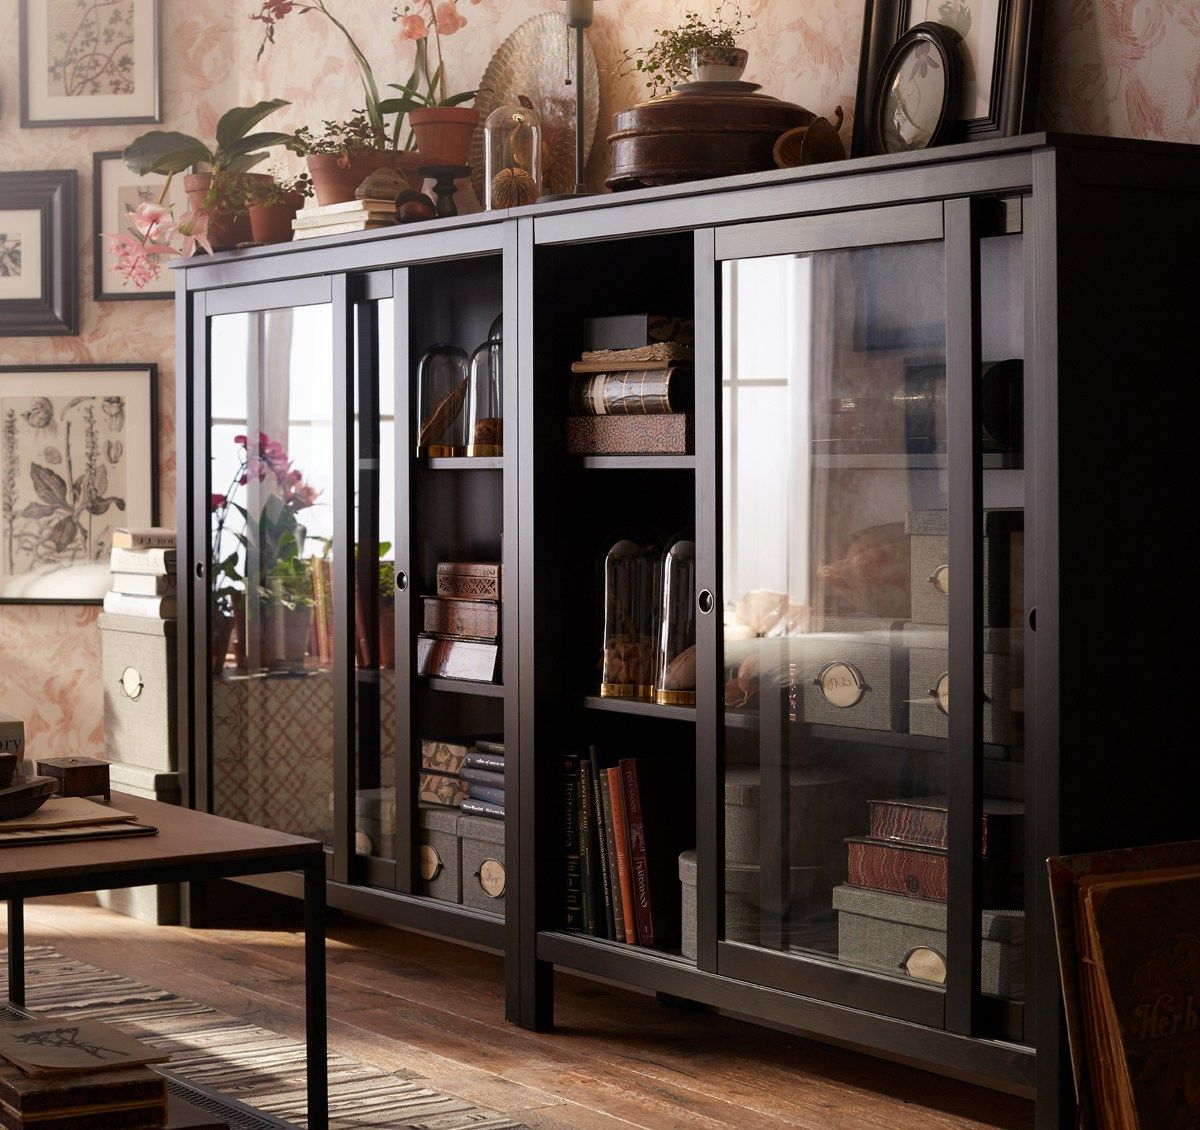 Offene Wohnzimmeraufbewahrung Ideen Wall Cabinets Living Room Ikea Hemnes Living Room Ikea Living Room